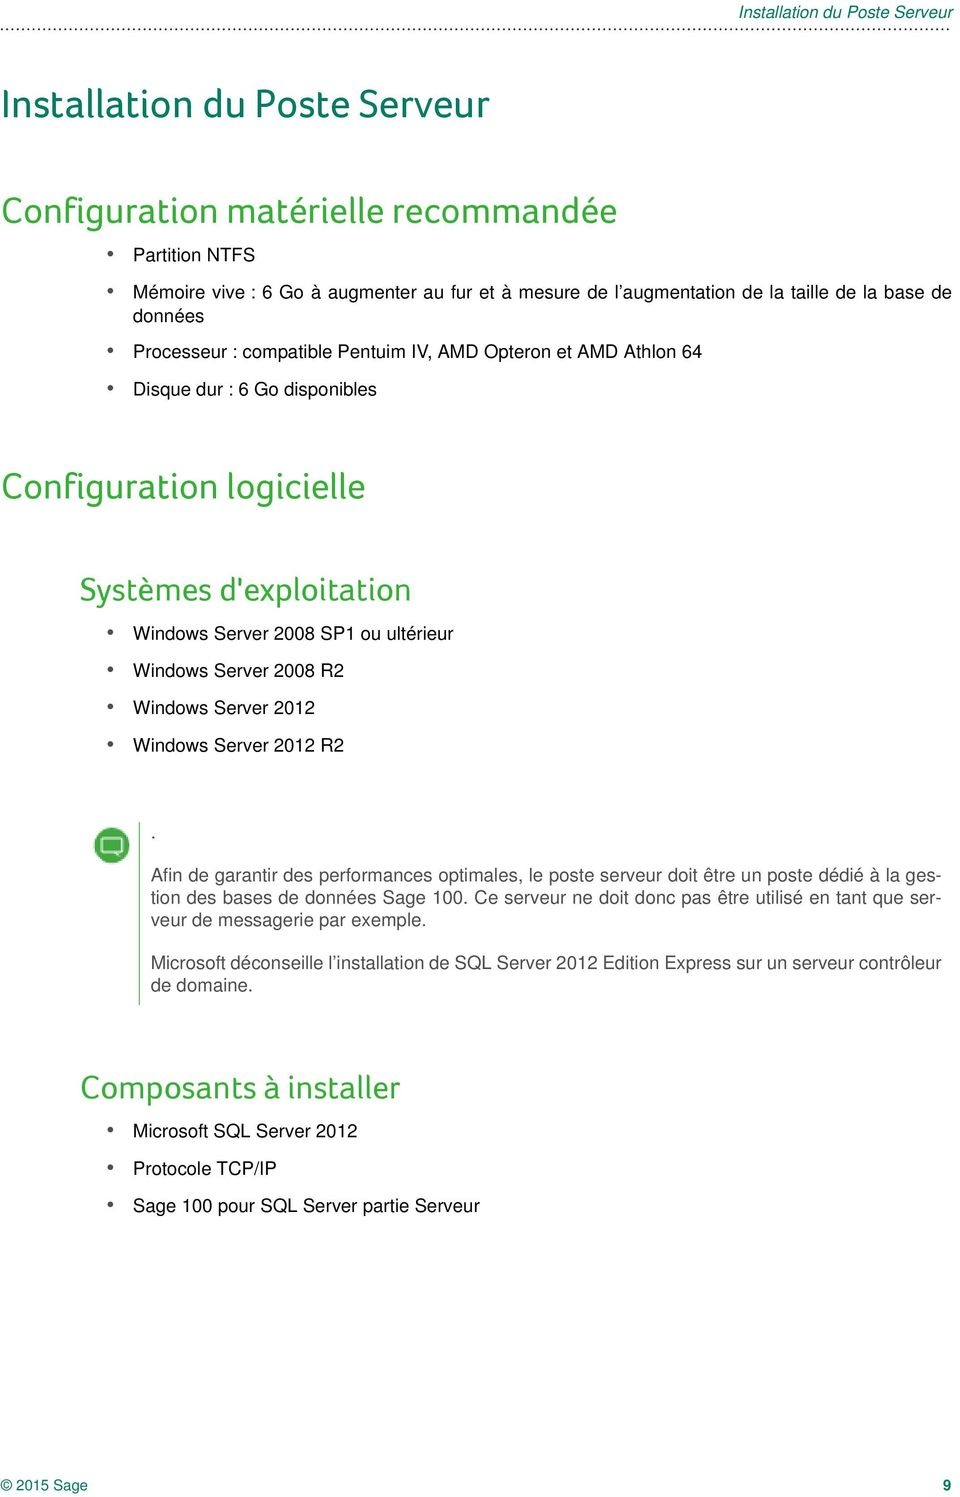 Windows Server 2008 R2 Windows Server 2012 Windows Server 2012 R2. Afin de garantir des performances optimales, le poste serveur doit être un poste dédié à la gestion des bases de données Sage 100.